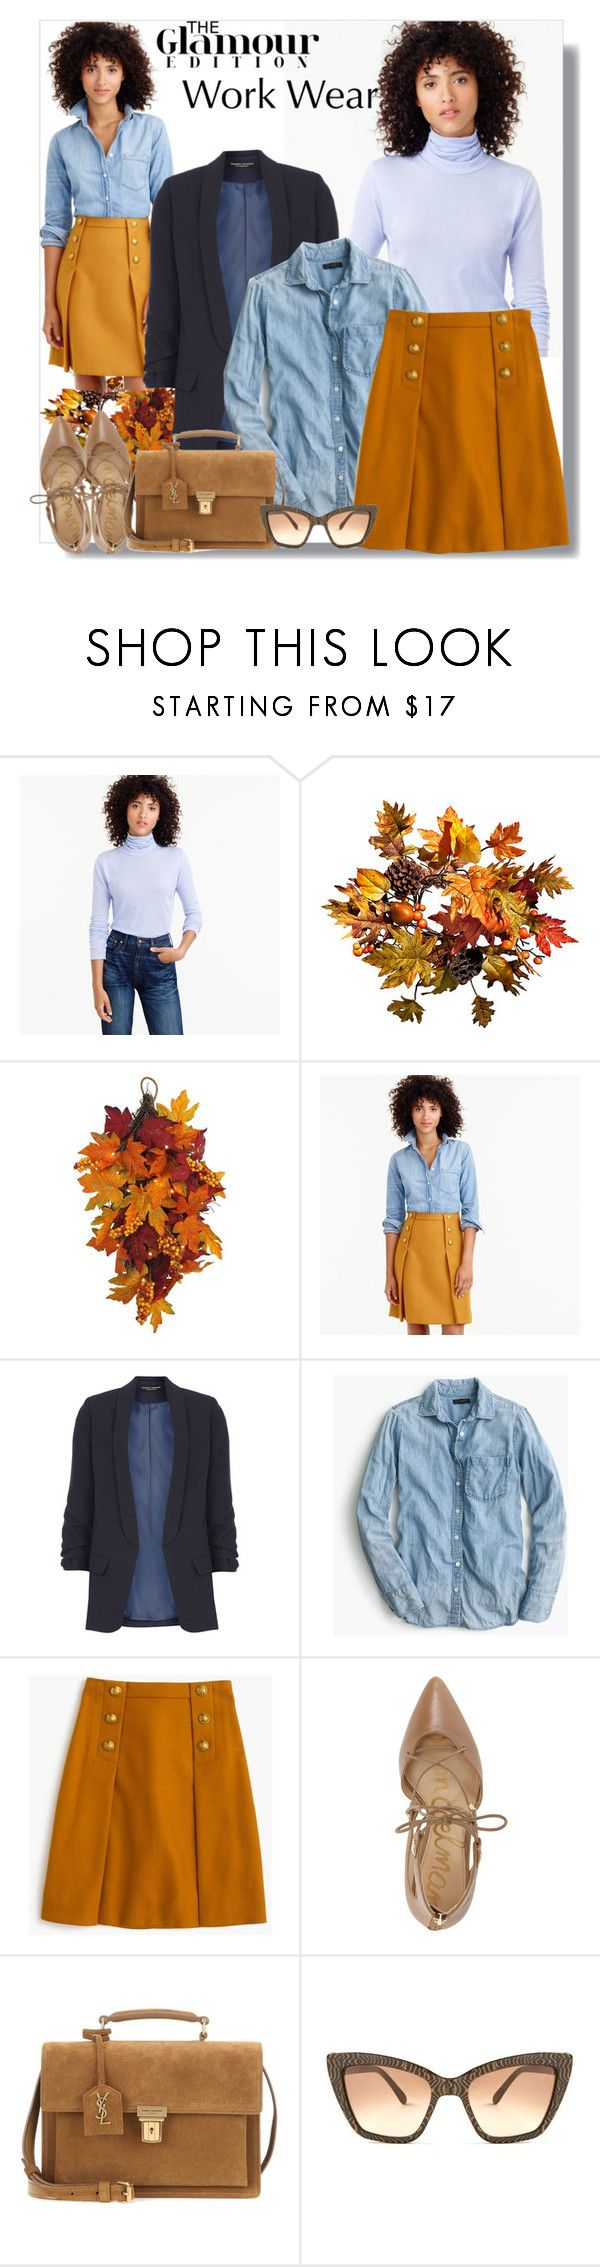 """""""Work Wear:  The Preppy Look"""" by teah507 ❤ liked on Polyvore featuring J.Crew, Improvements, WALL, Dorothy Perkins, Sam Edelman, Yves Saint Laurent, Prism, WorkWear, skirts and fallfashion"""